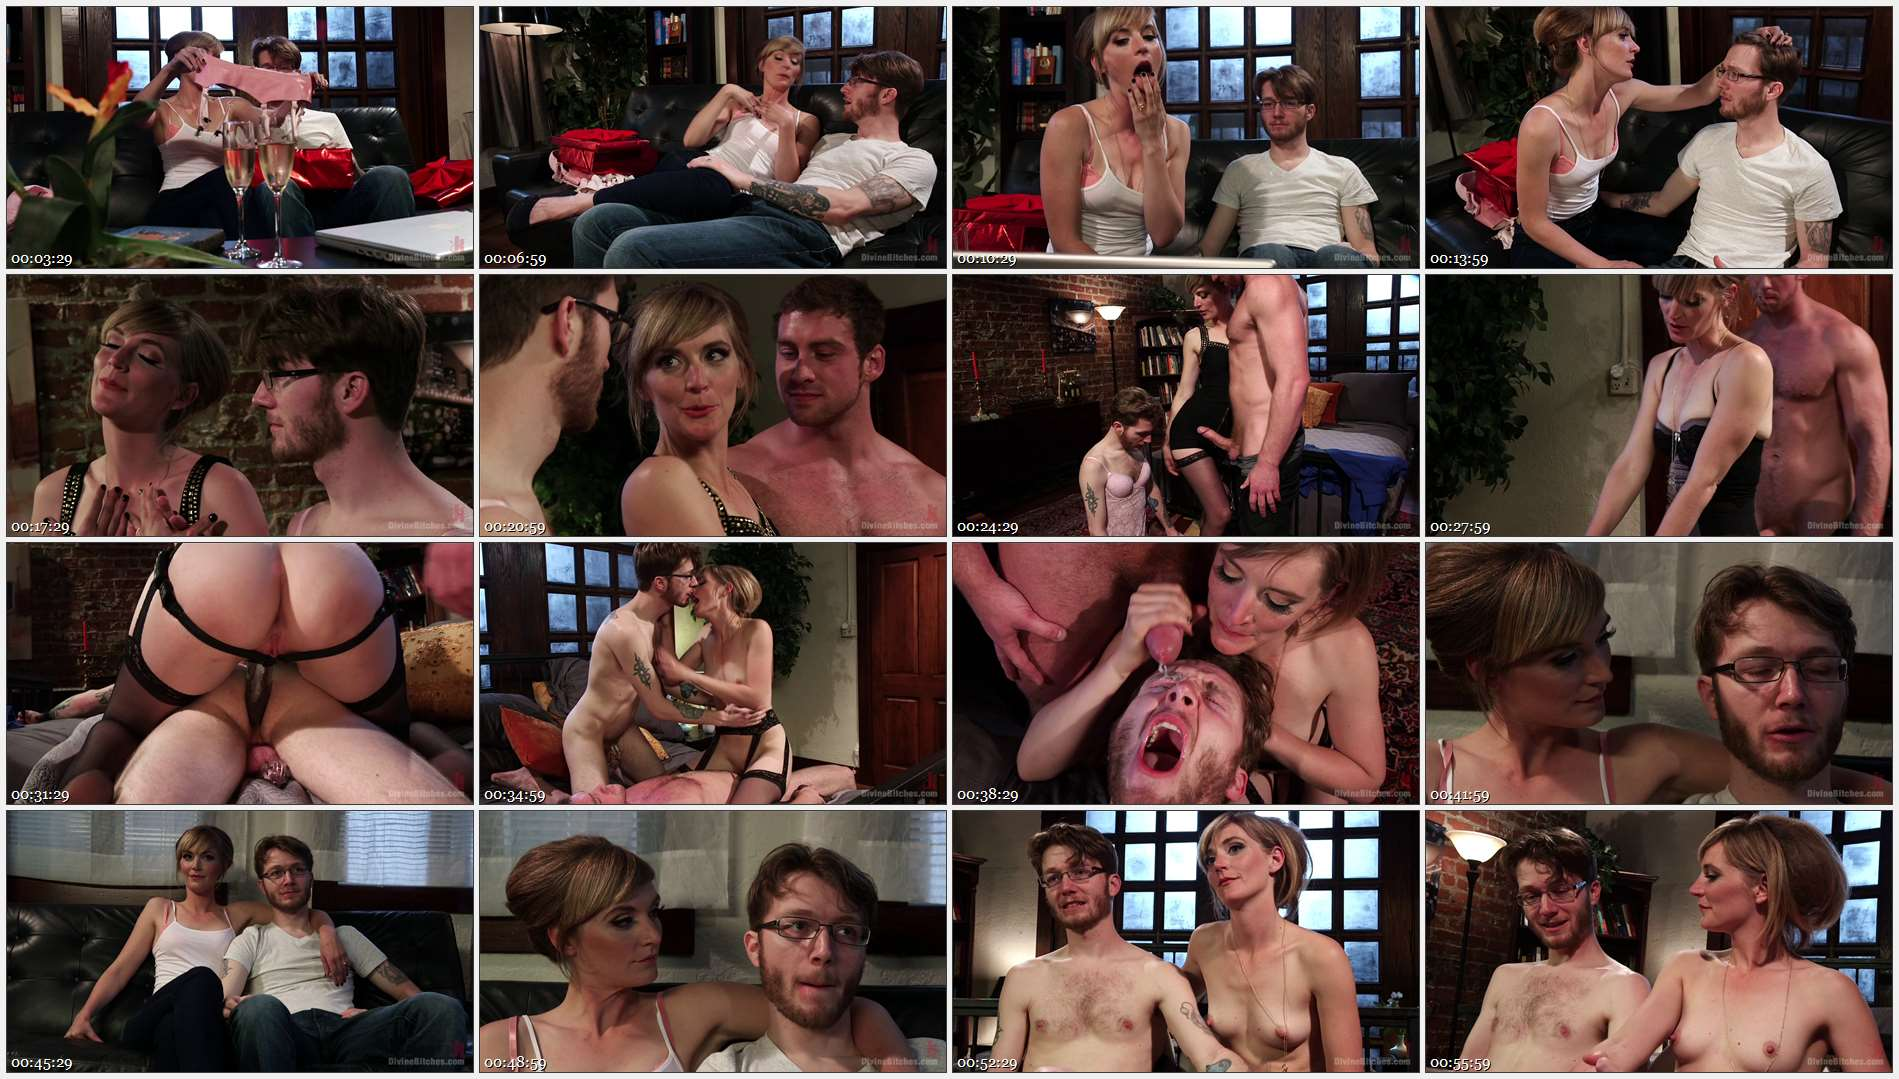 Connor Maguire – Mona Wales – Patrick Knight – Honeymoon Humiliation: Wife Cuckolds New Hubby Into Better Sex 